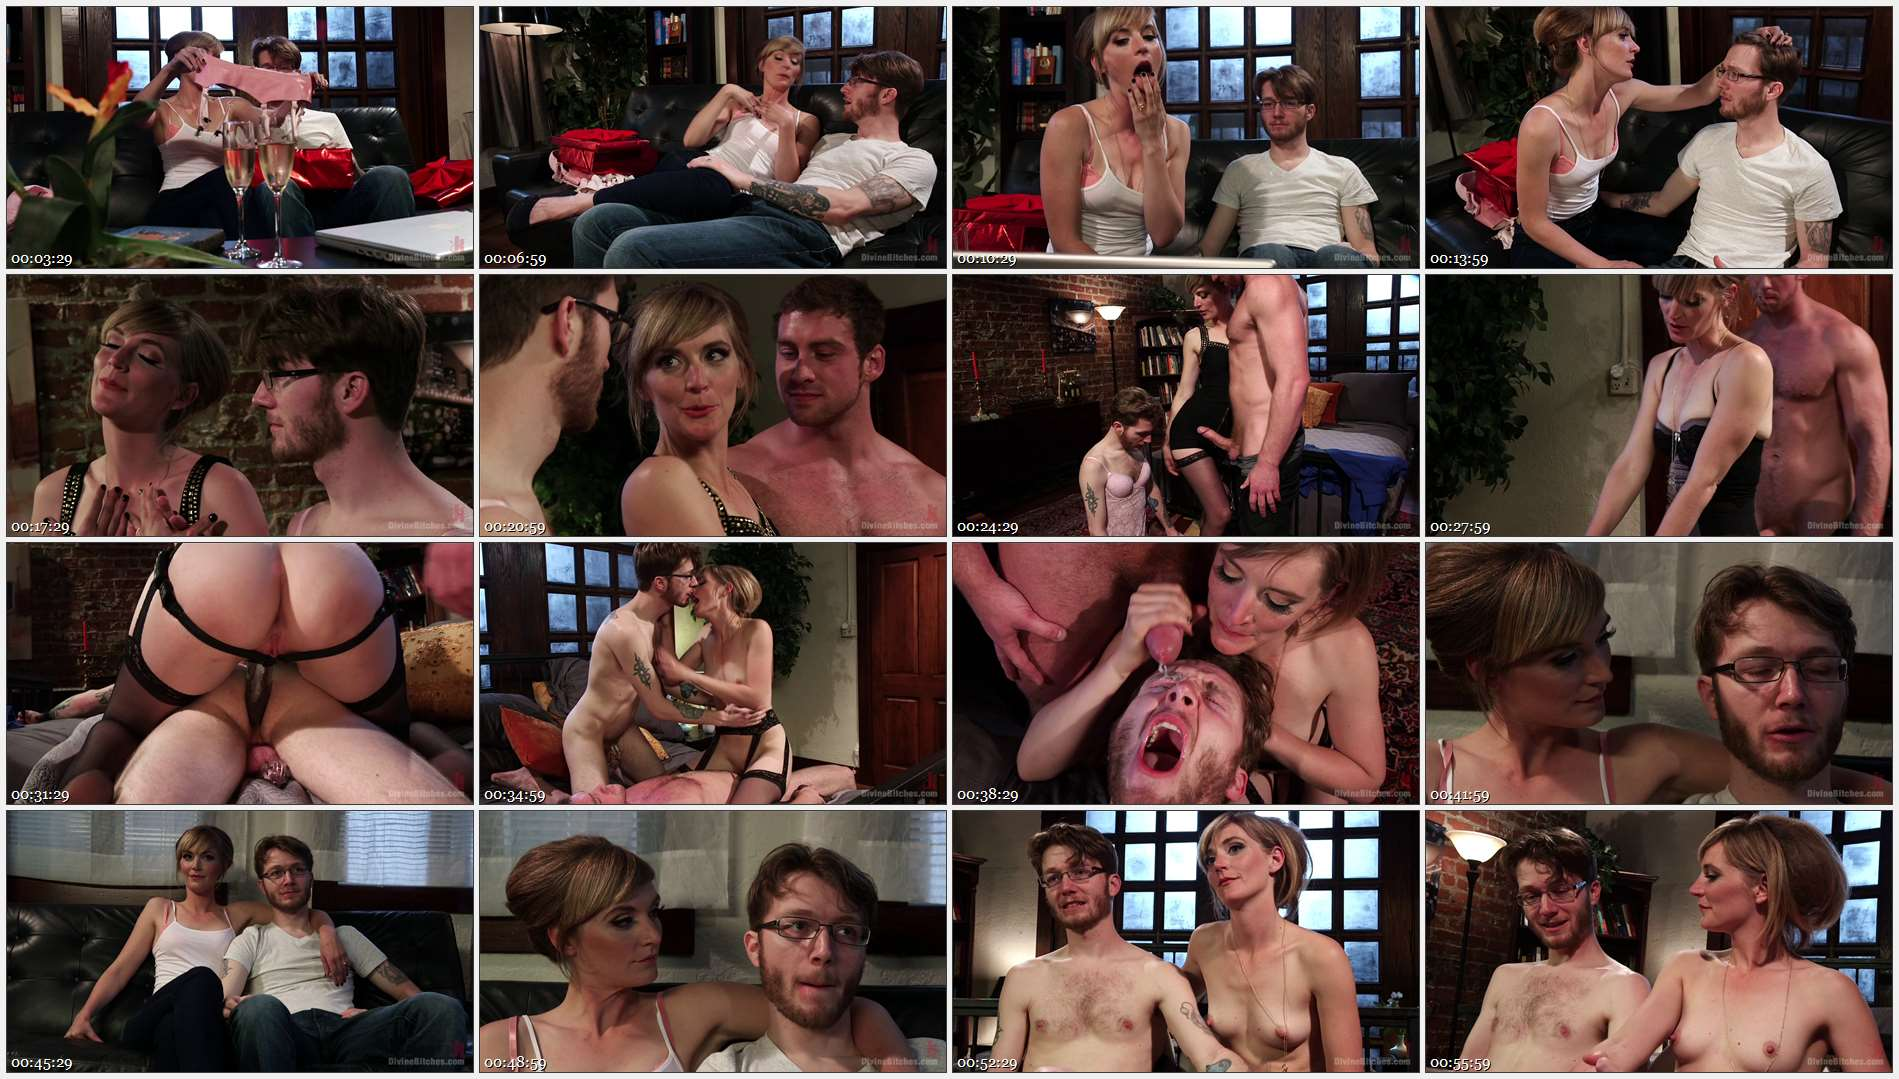 Connor Maguire – Mona Wales – Patrick Knight – Honeymoon Humiliation: Wife Cuckolds New Hubby Into Better Sex 